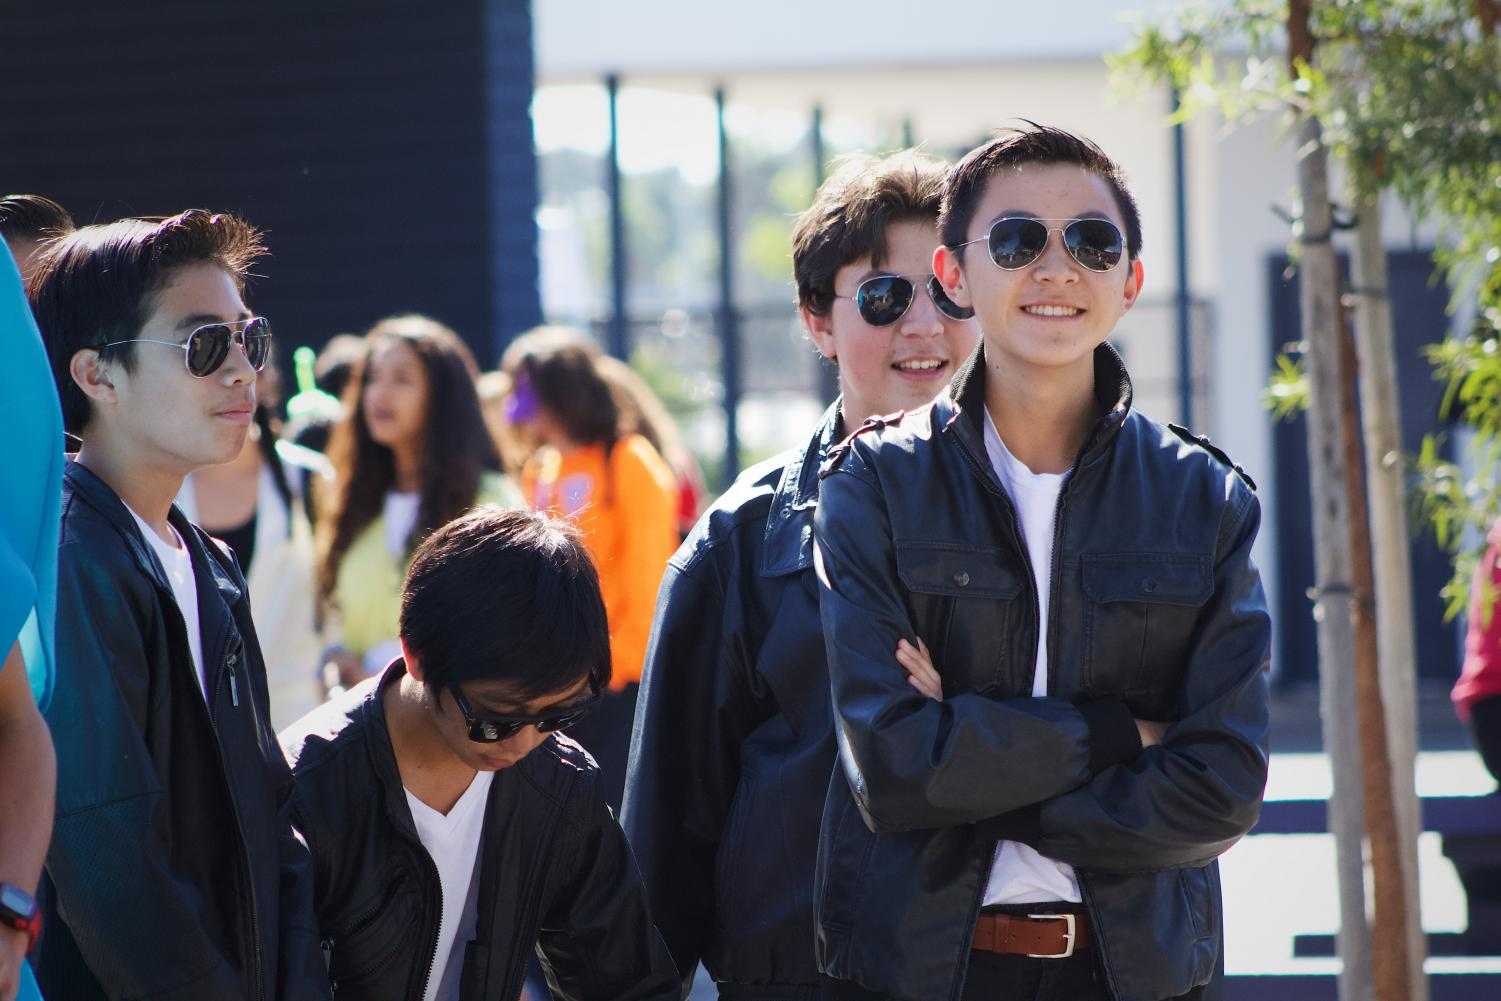 Greaser stands, smiling after finding out that him and his clan won the costume contest.